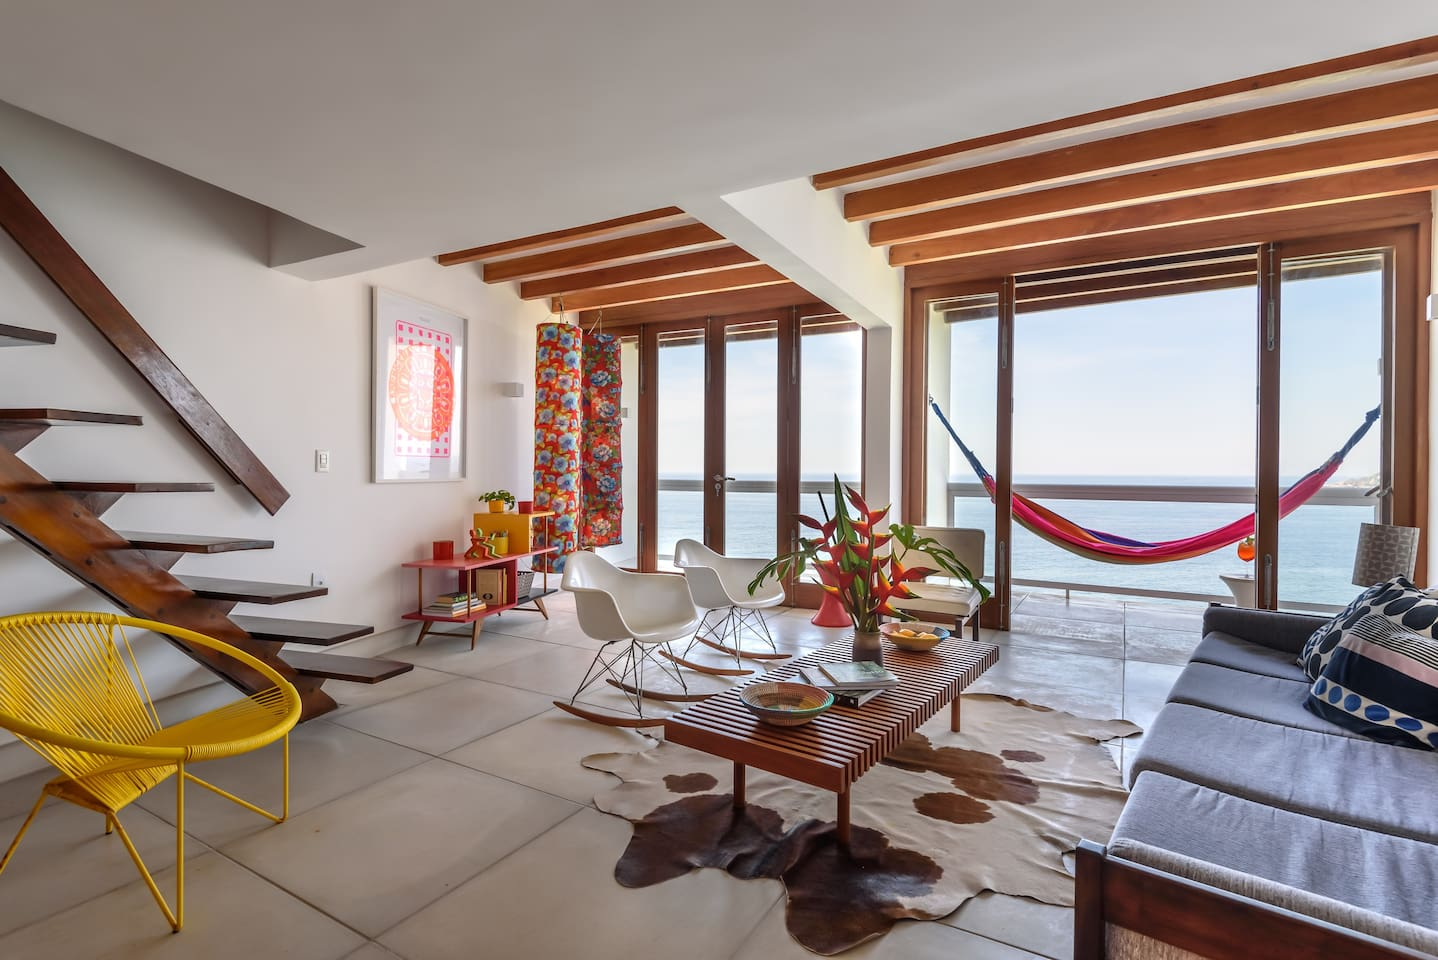 The double width living room of Casa Joa. With two balconies and a bar. Perfect for reading, relaxing or entertaining guests.